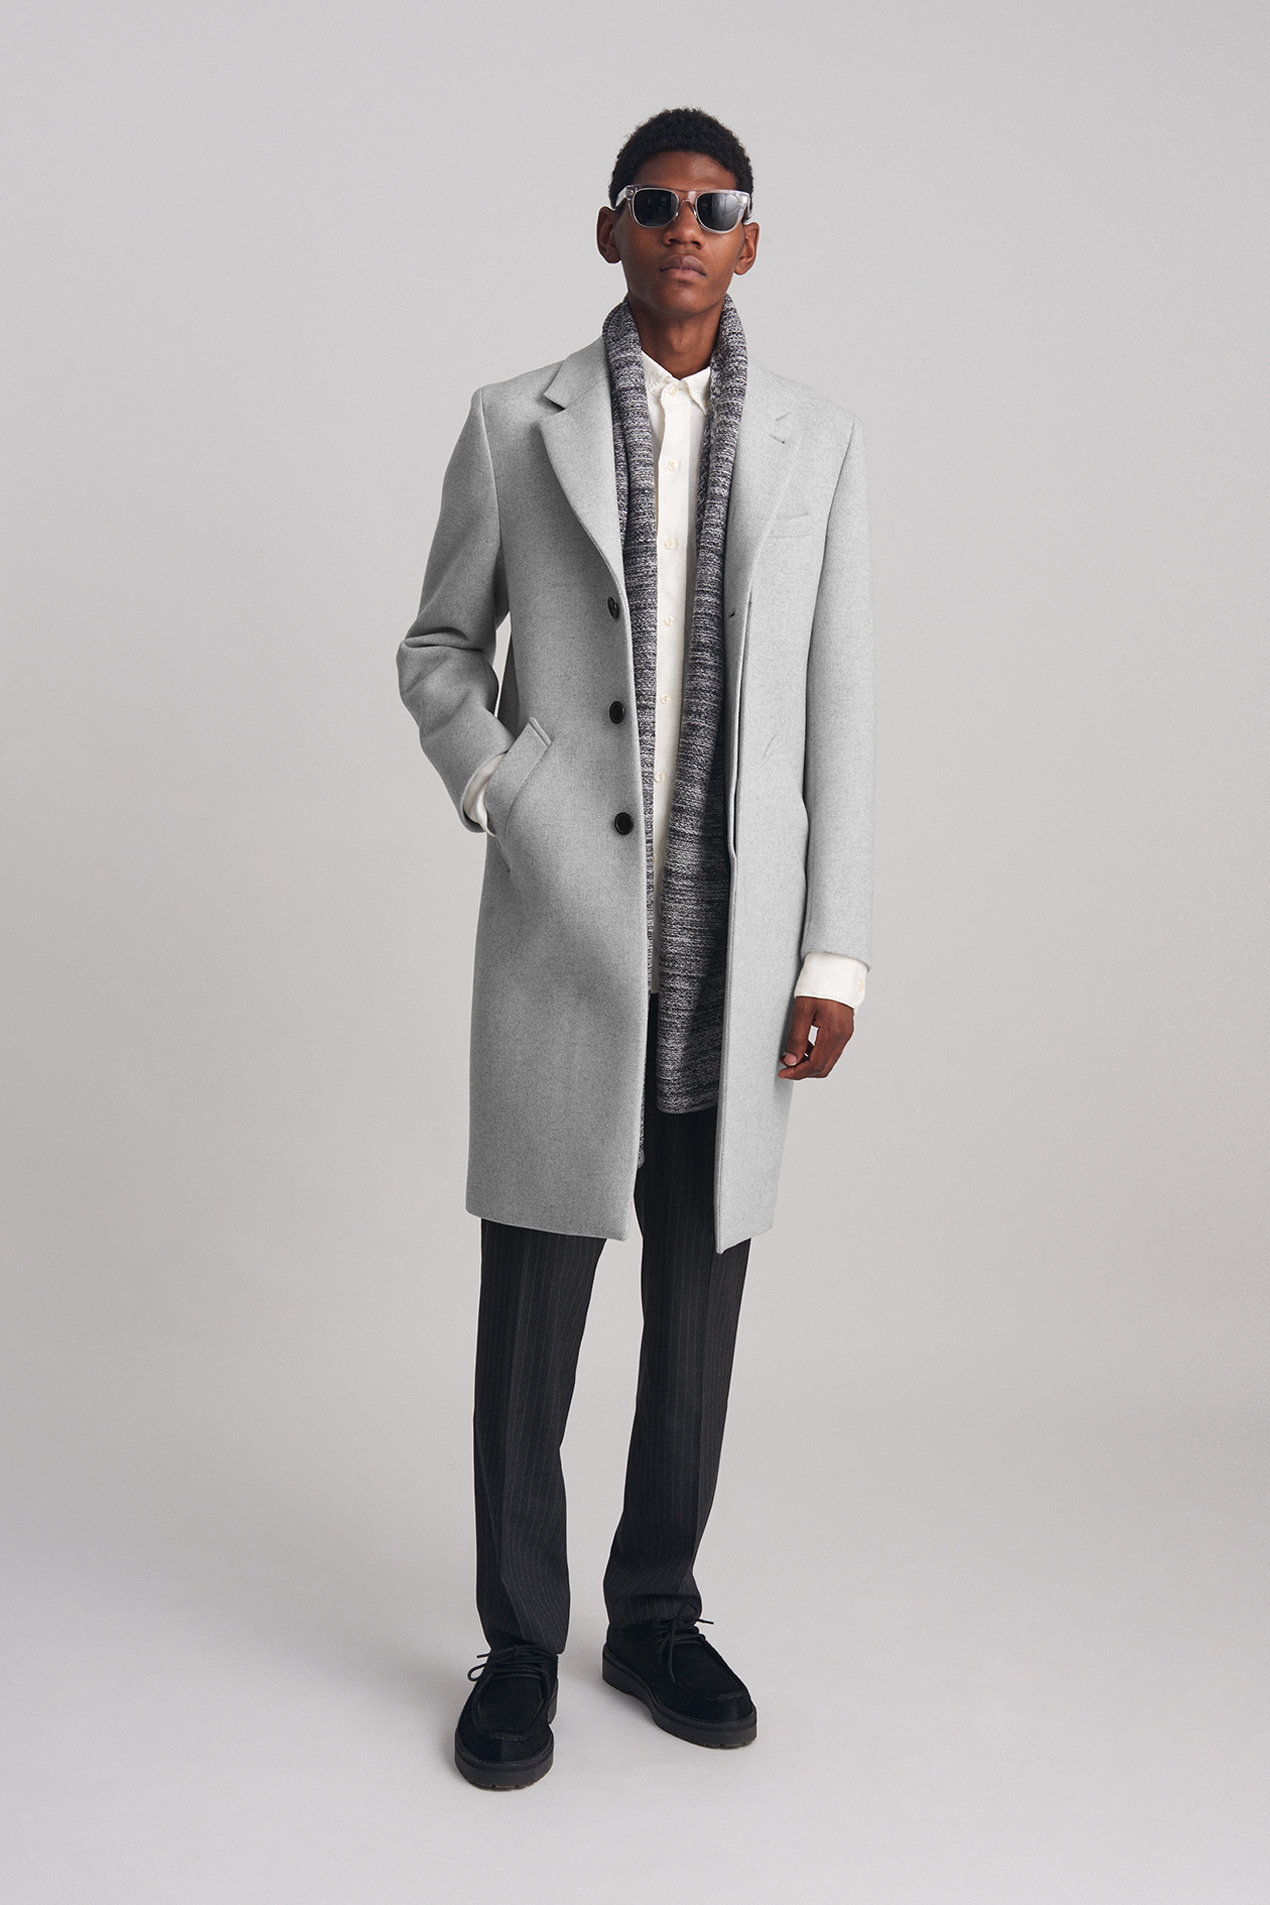 The Morgan Wool Coat in Ash Heather paired with the Panos Trousers, Laszlo Trousers and a Scarf